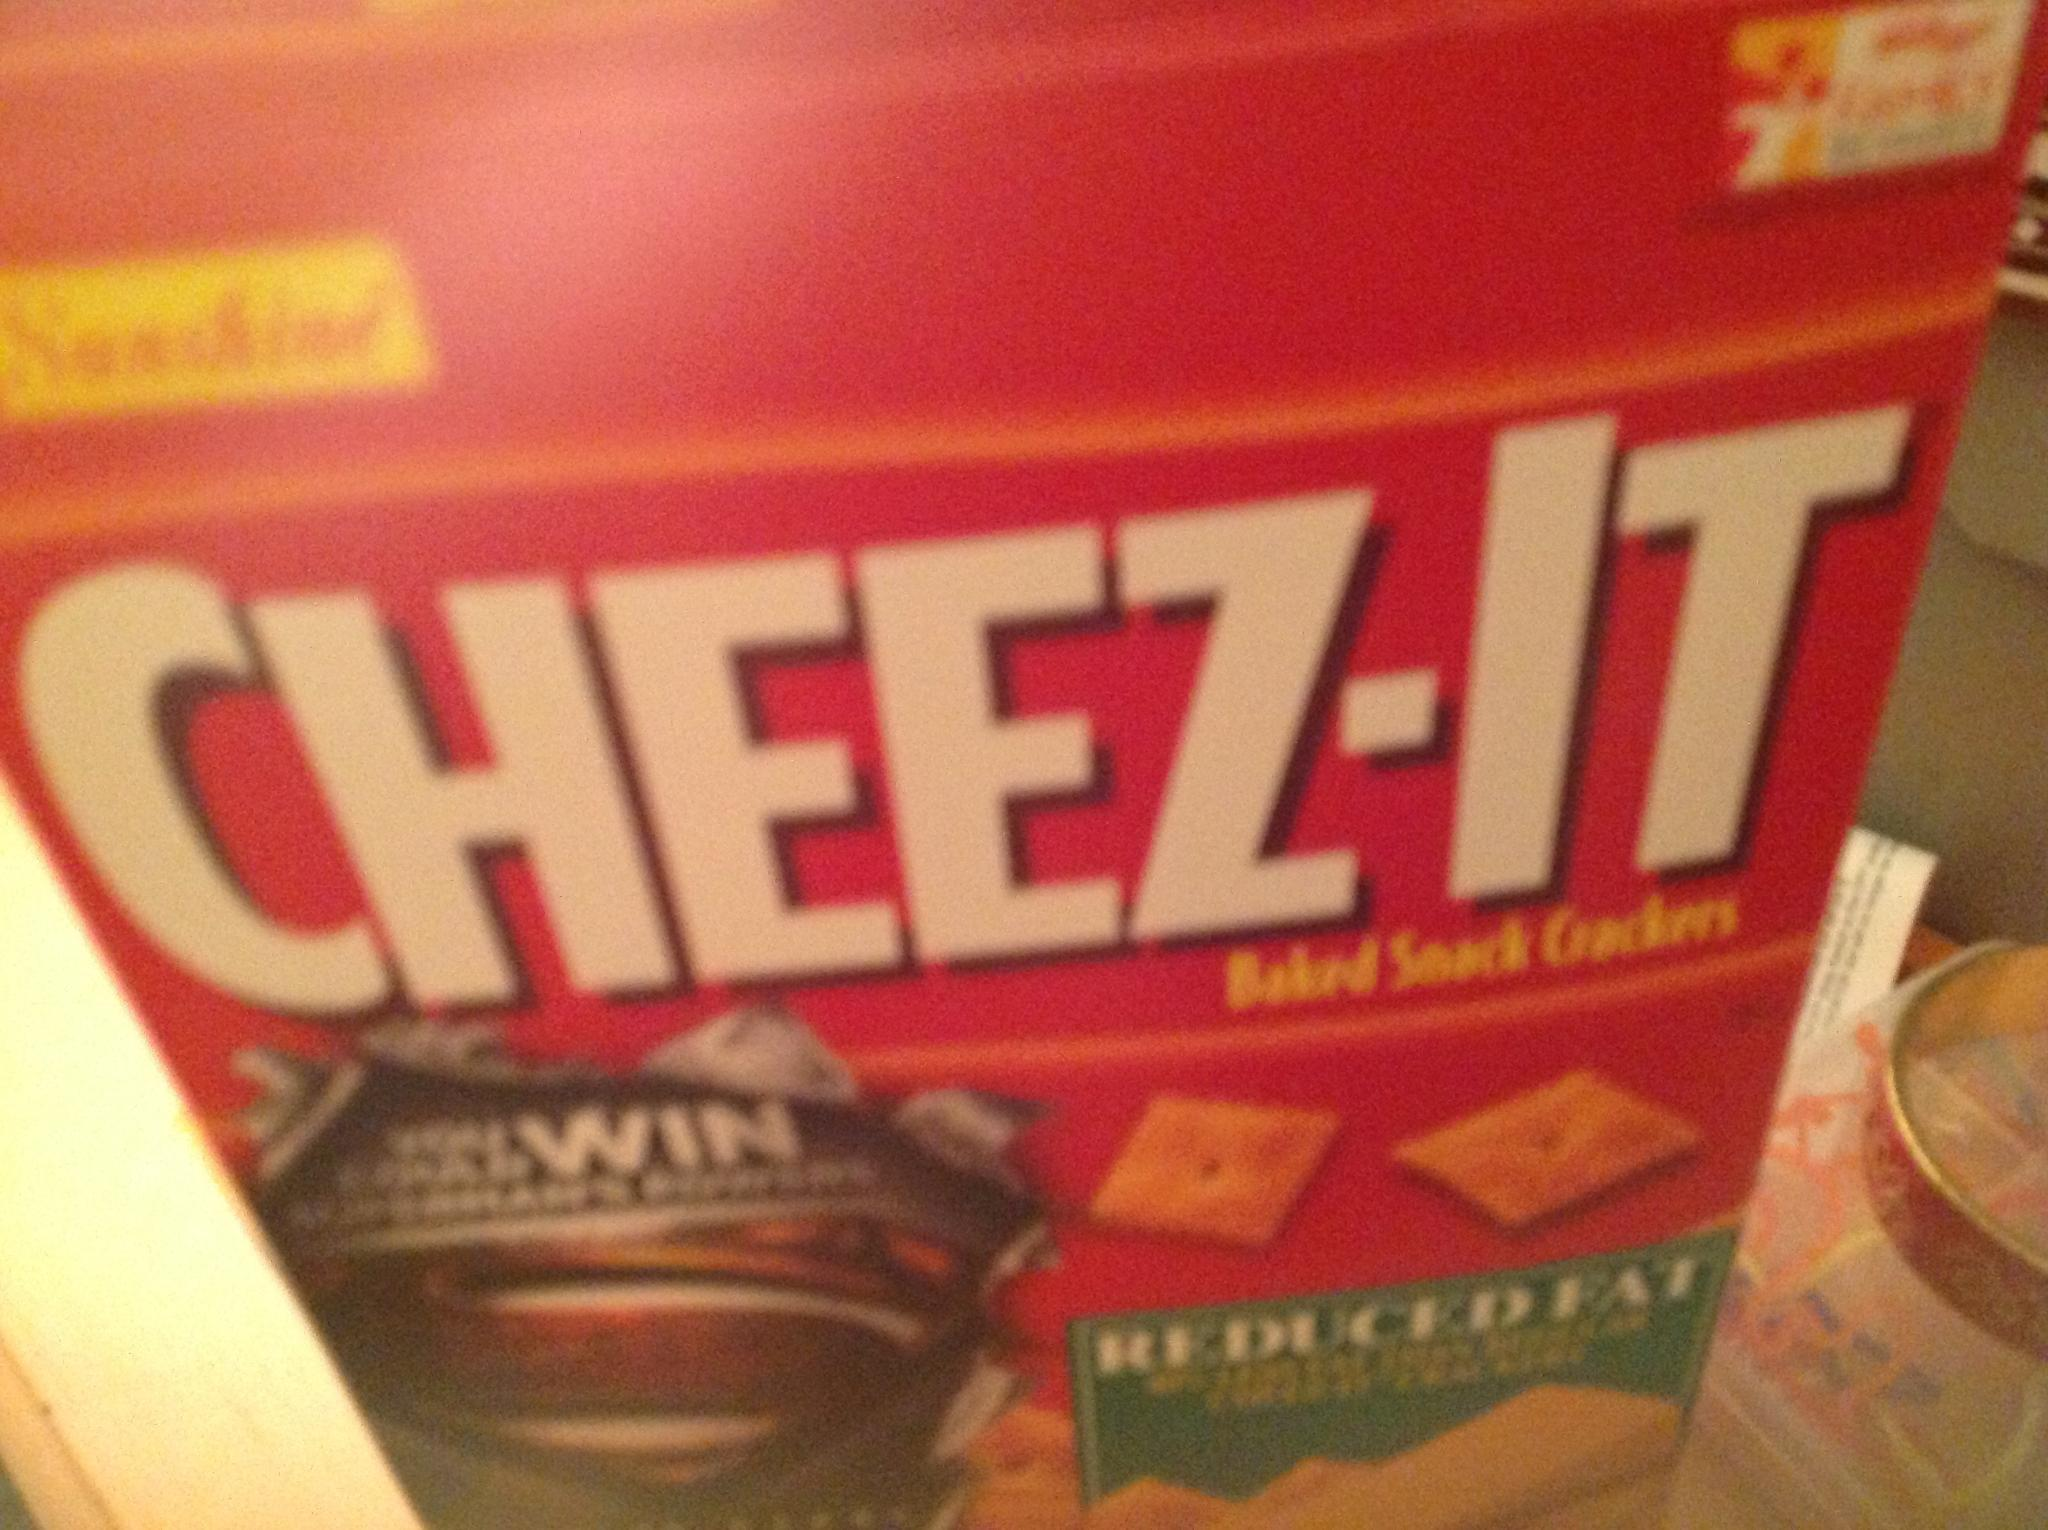 What cheez-it are u